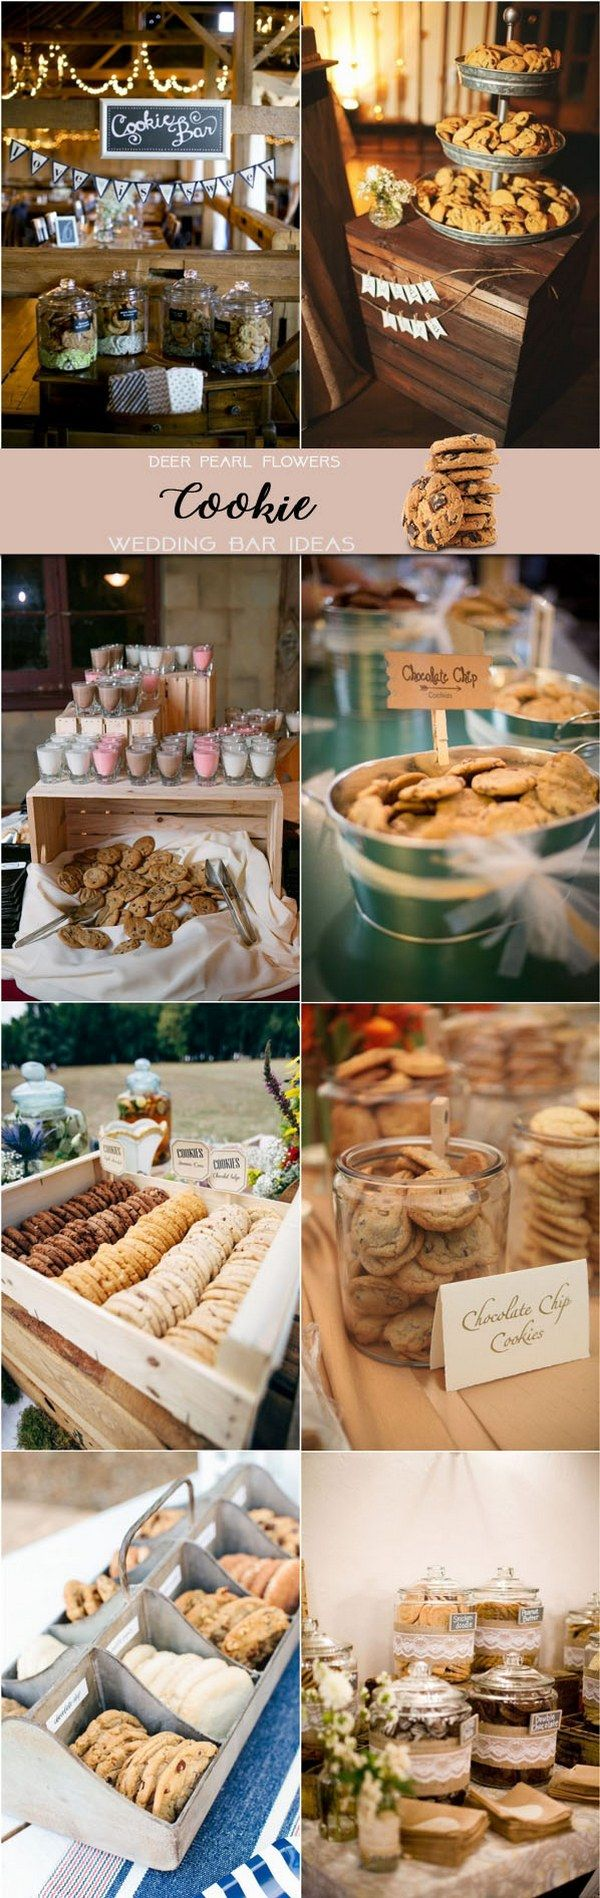 Wedding catering trends top 8 wedding dessert bar ideas for Food bar trend skopje